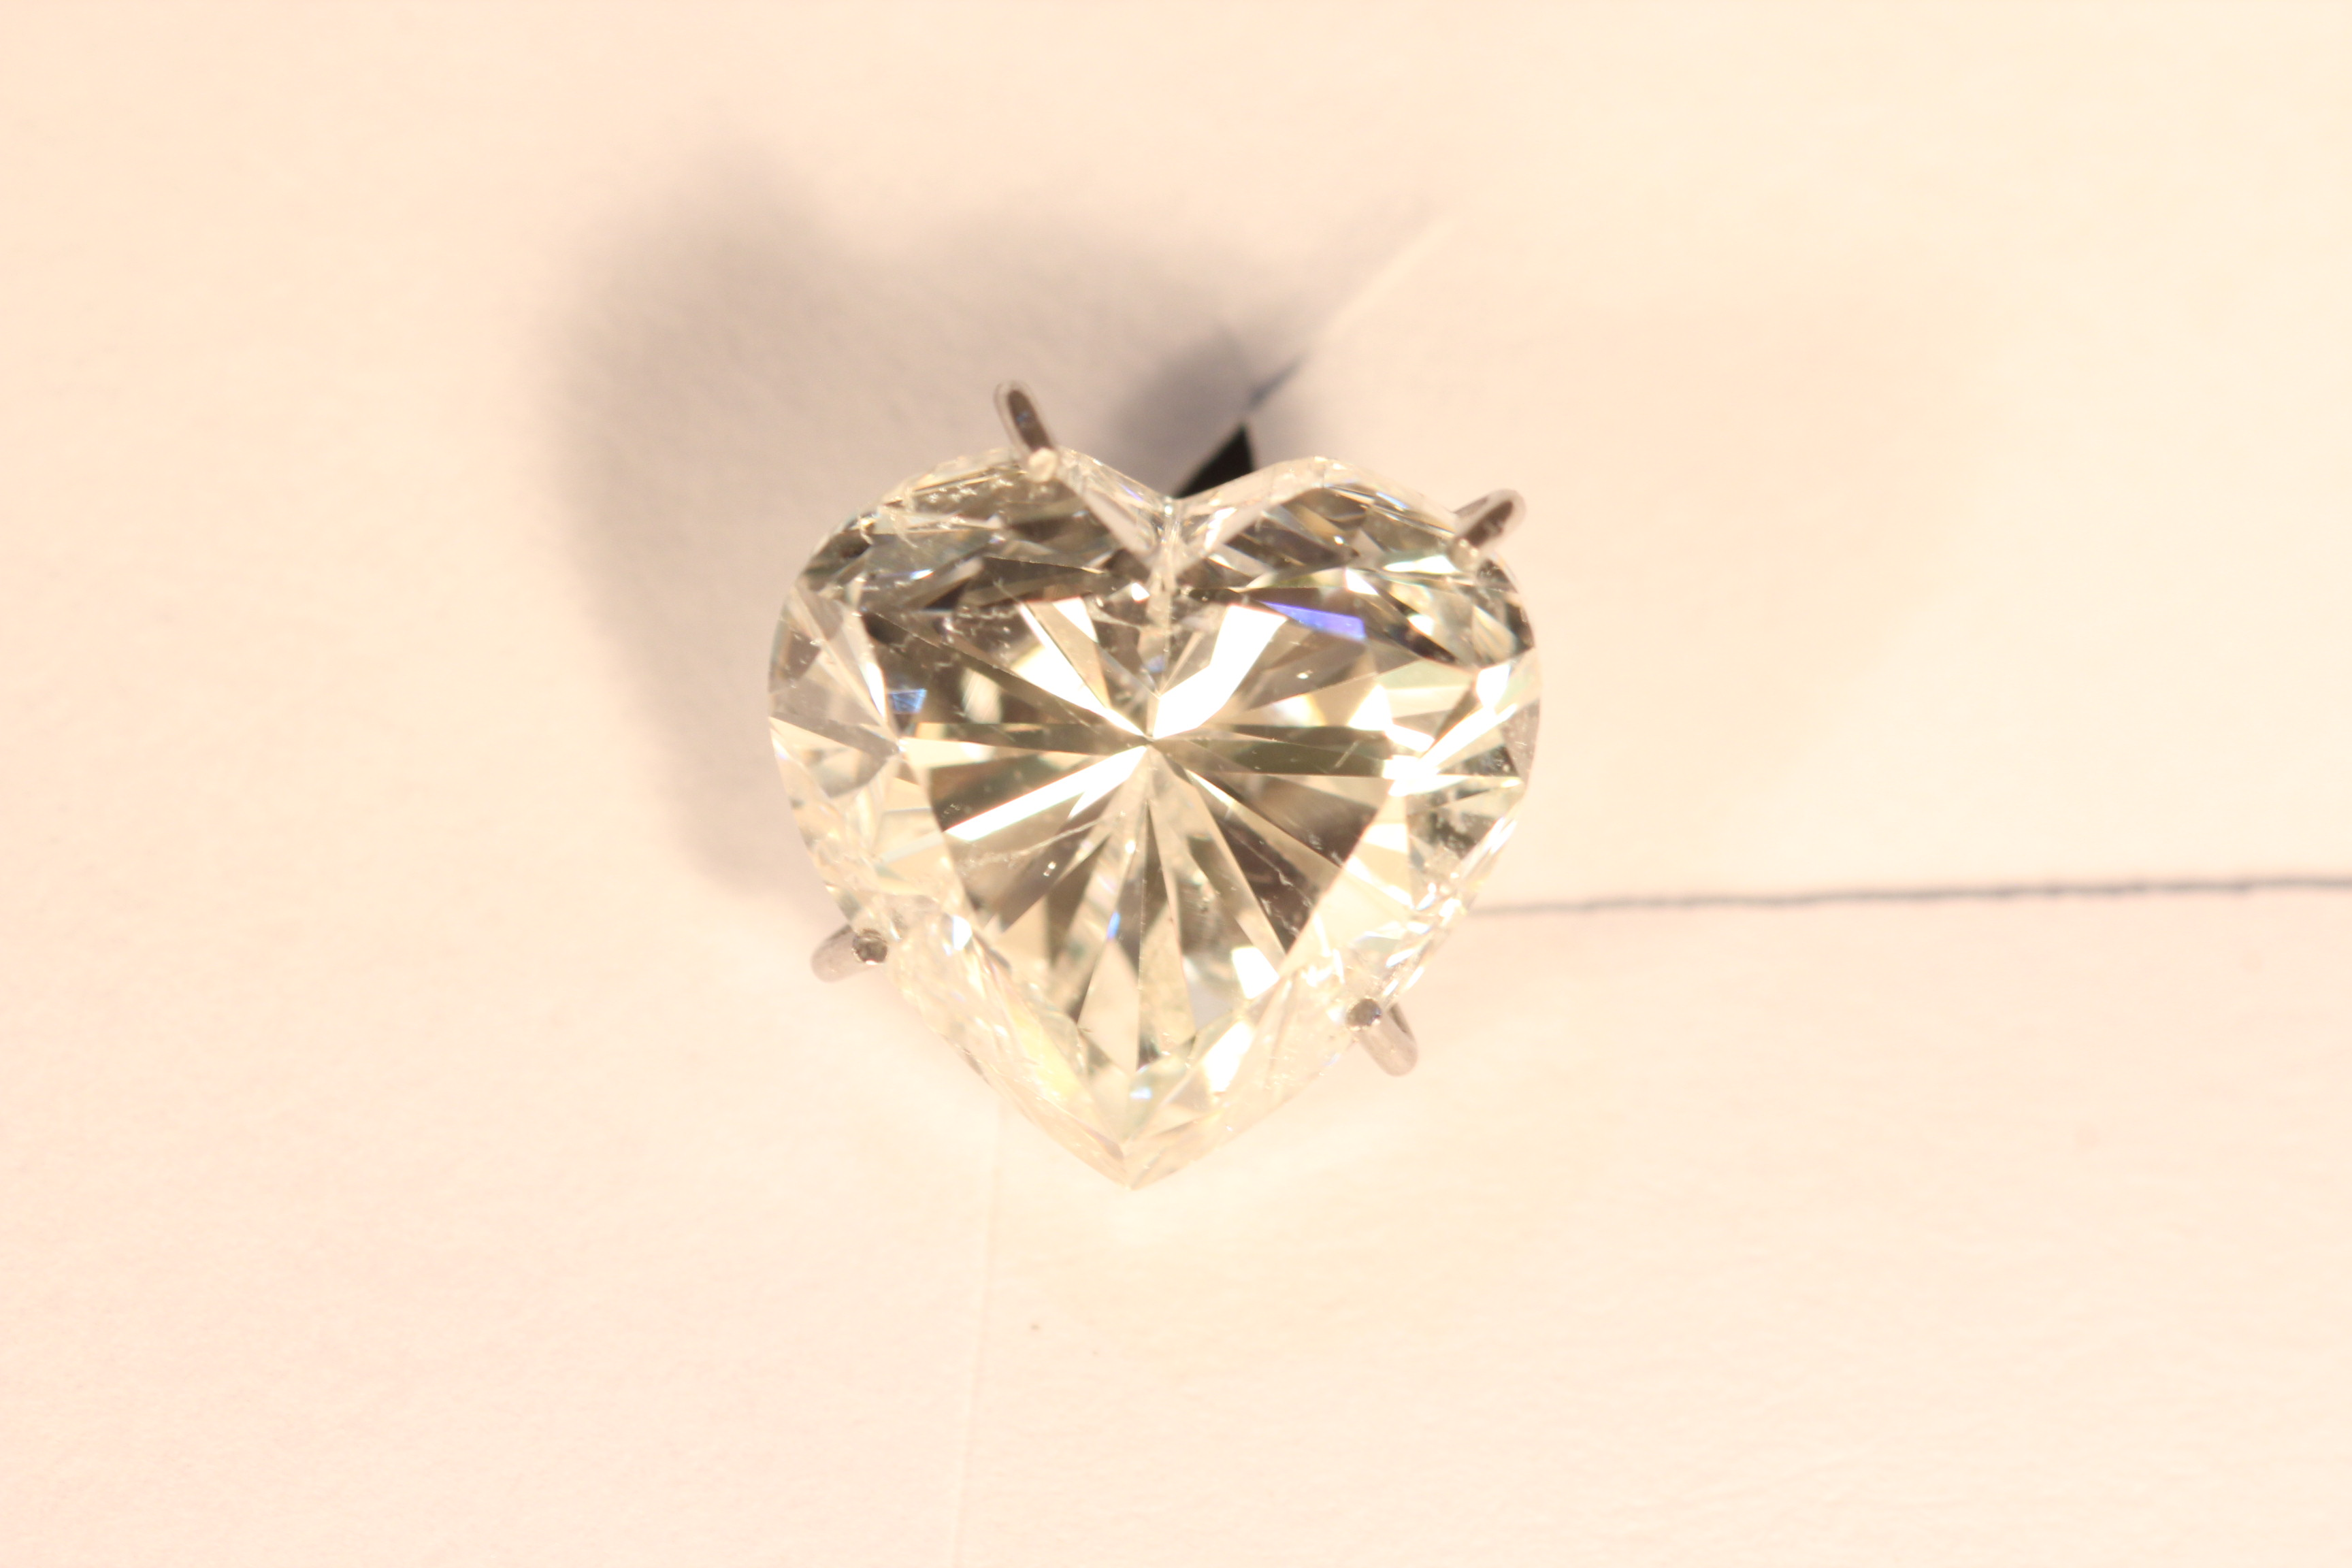 Heart shape Diamond,2.03ct.